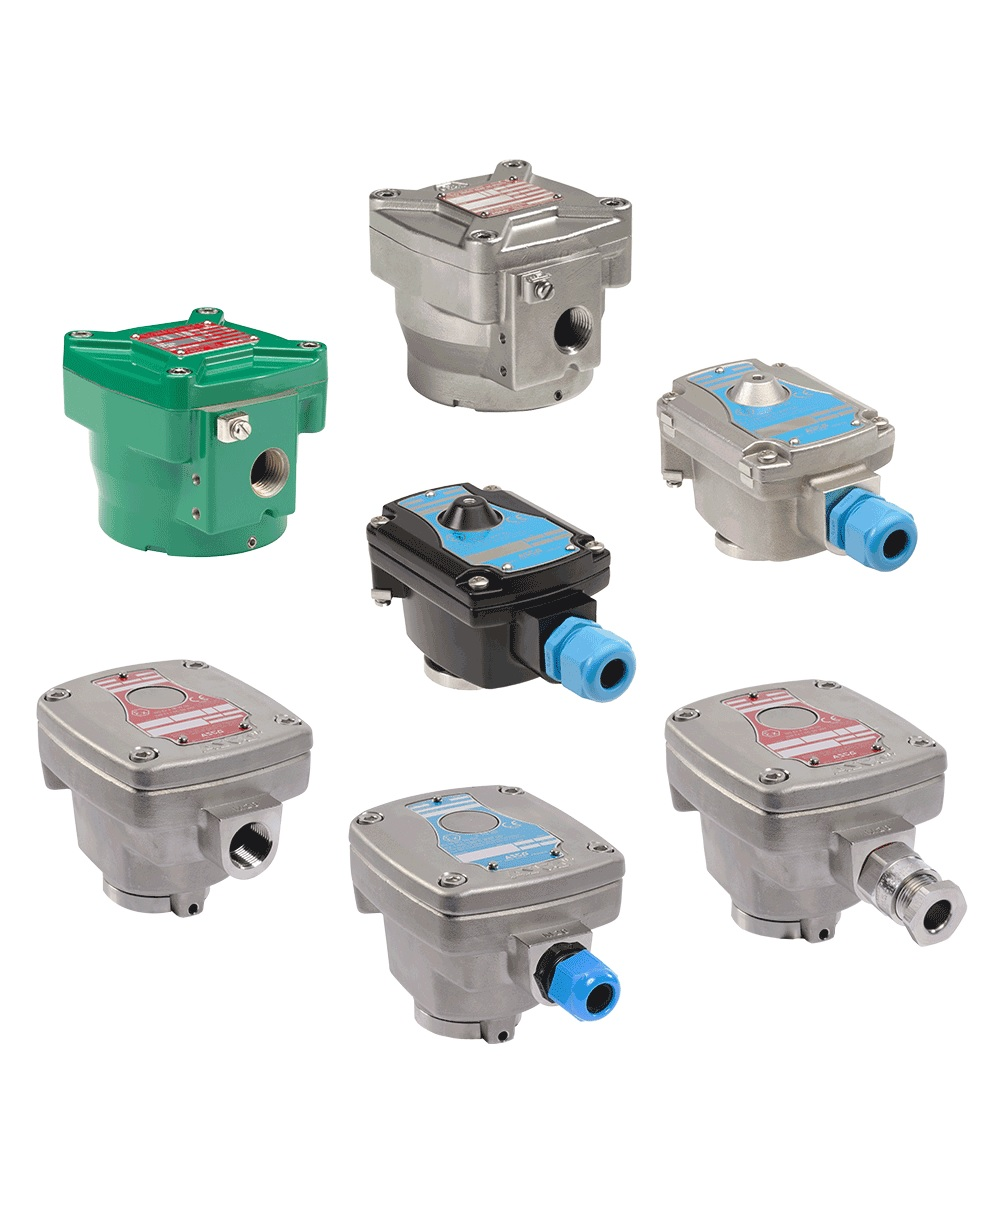 ATEX Approved Valves